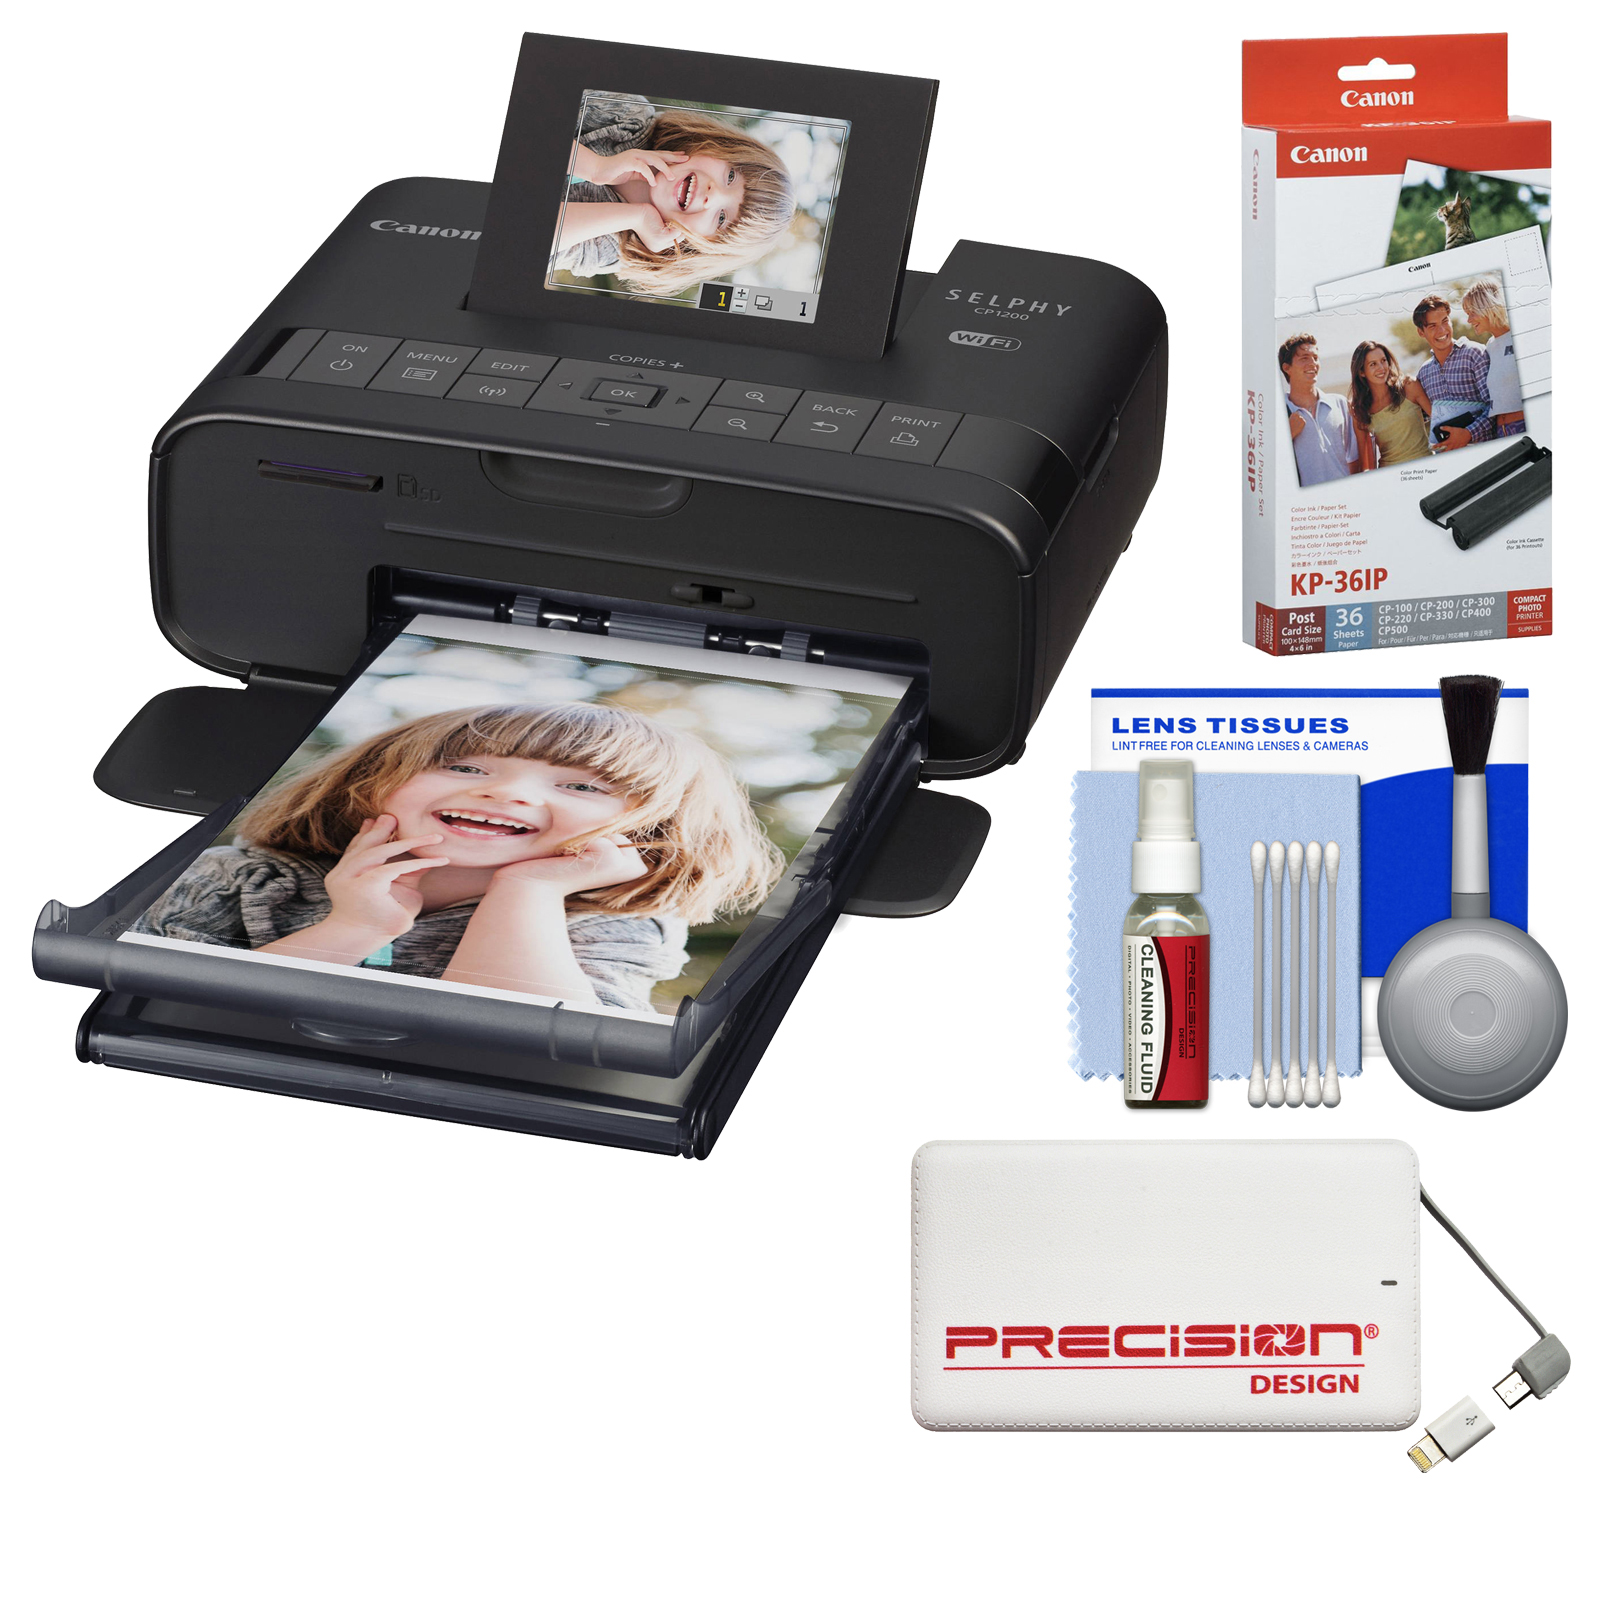 Canon SELPHY CP1200 Wi-Fi Wireless Compact Photo Printer (Black) with Ink + Paper + Portable Power Pack + Kit